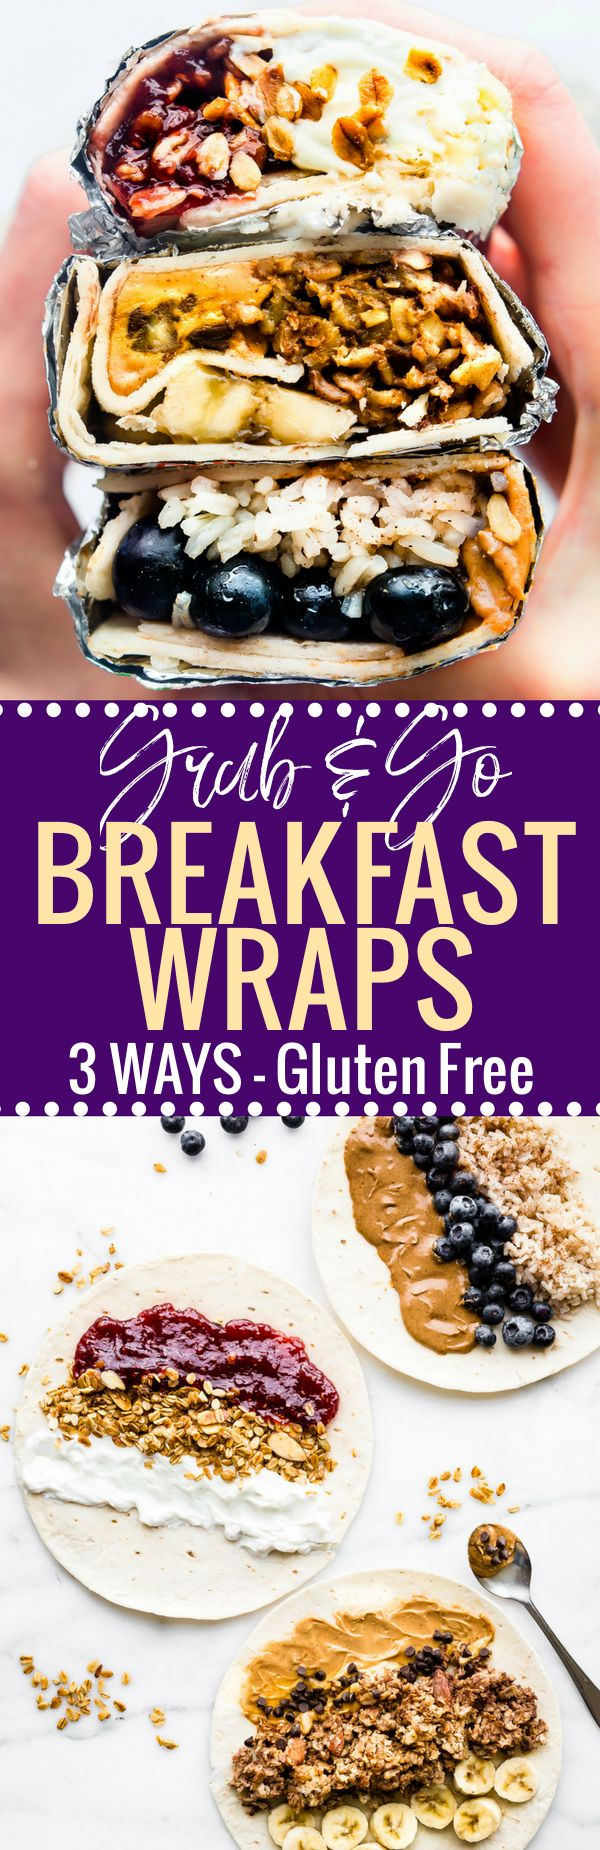 These sweet Gluten Free breakfast wraps are the perfect grab and go breakfast! Portable, freezer friendly, and filled with wholesome simple ingredients! Literally a healthy breakfast bowl wrapped up t (Fall Gluten Free Recipes)